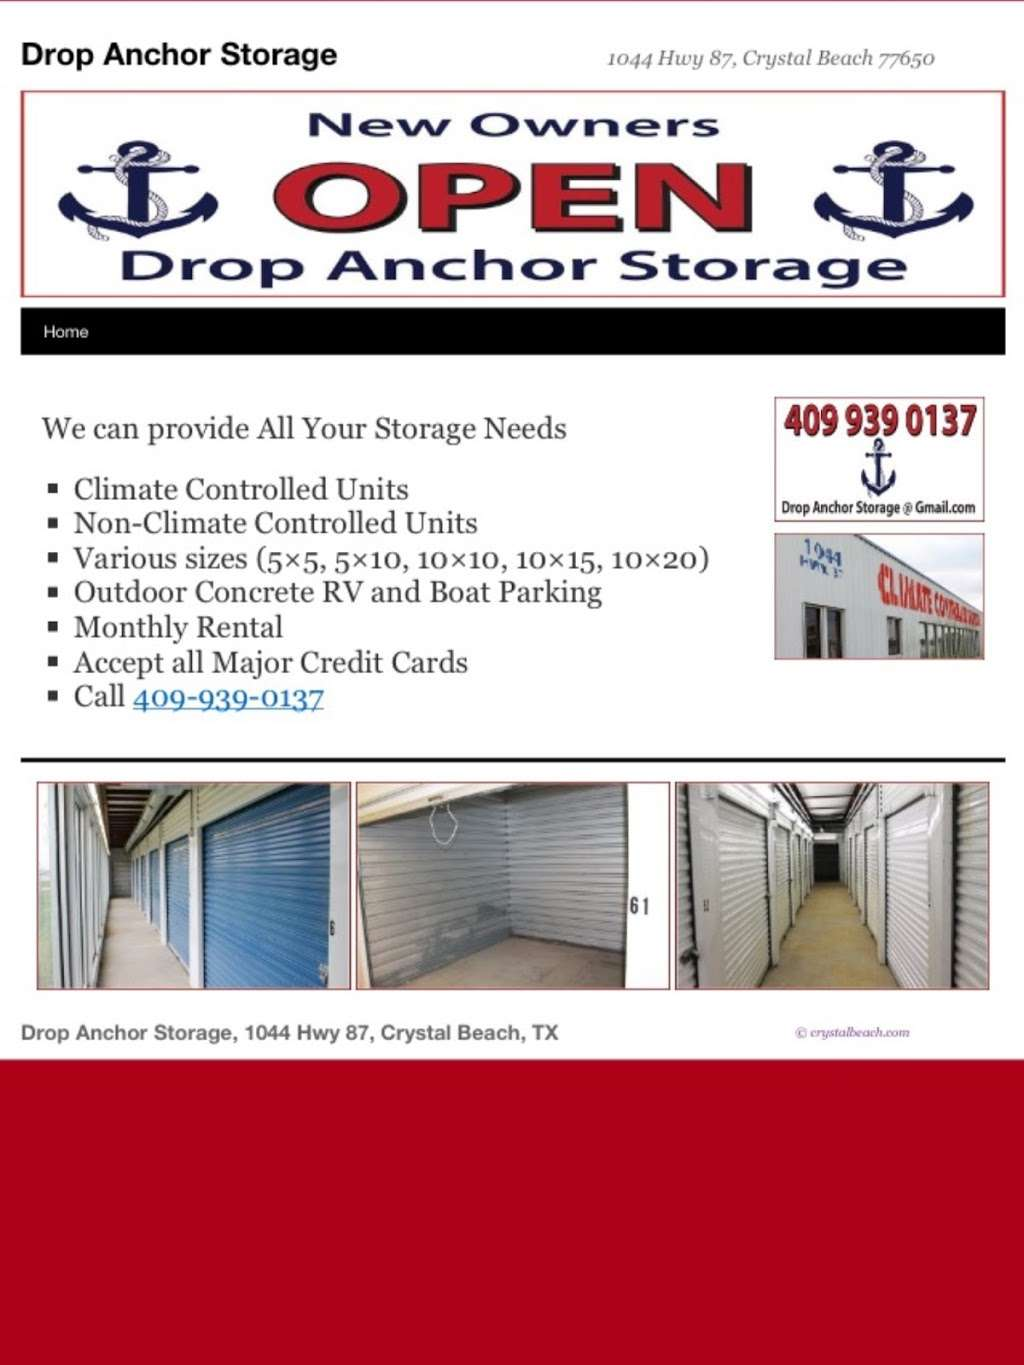 Drop Anchor Storage - storage  | Photo 2 of 3 | Address: 1044 State Hwy 87, Crystal Beach, TX 77650, USA | Phone: (409) 939-0137